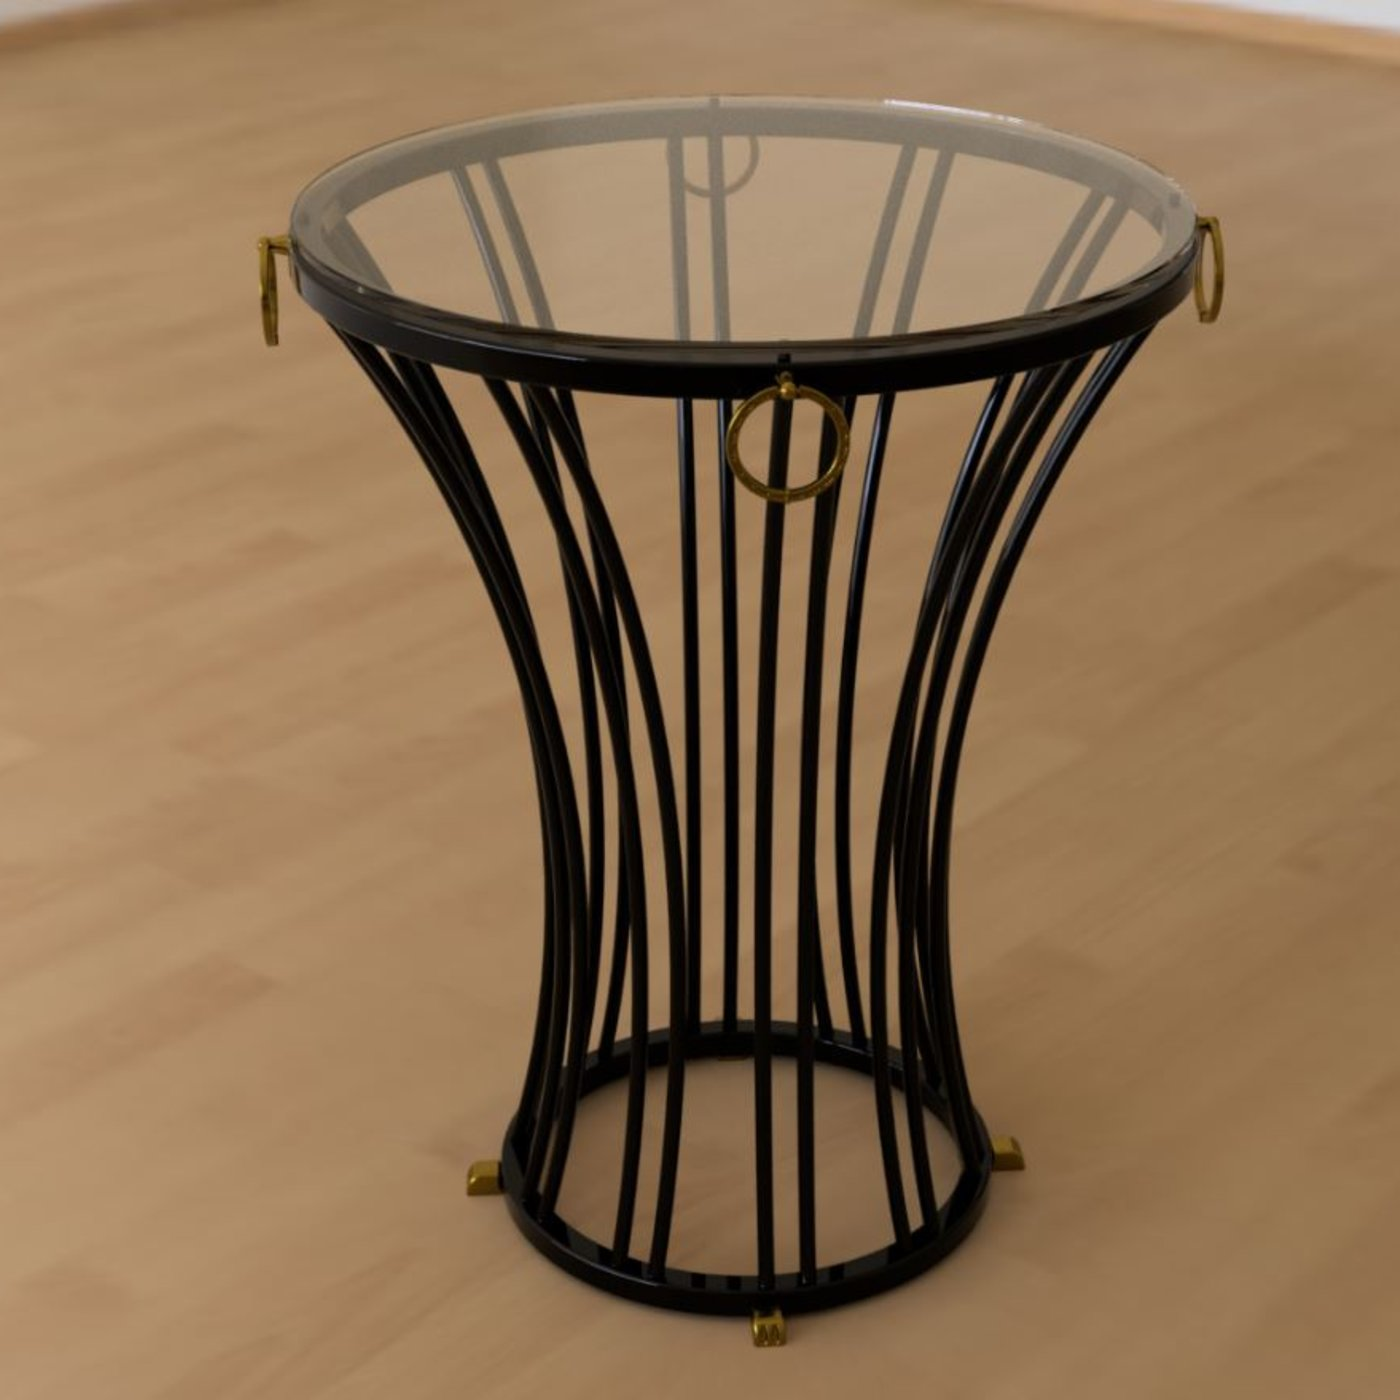 Roman round side table